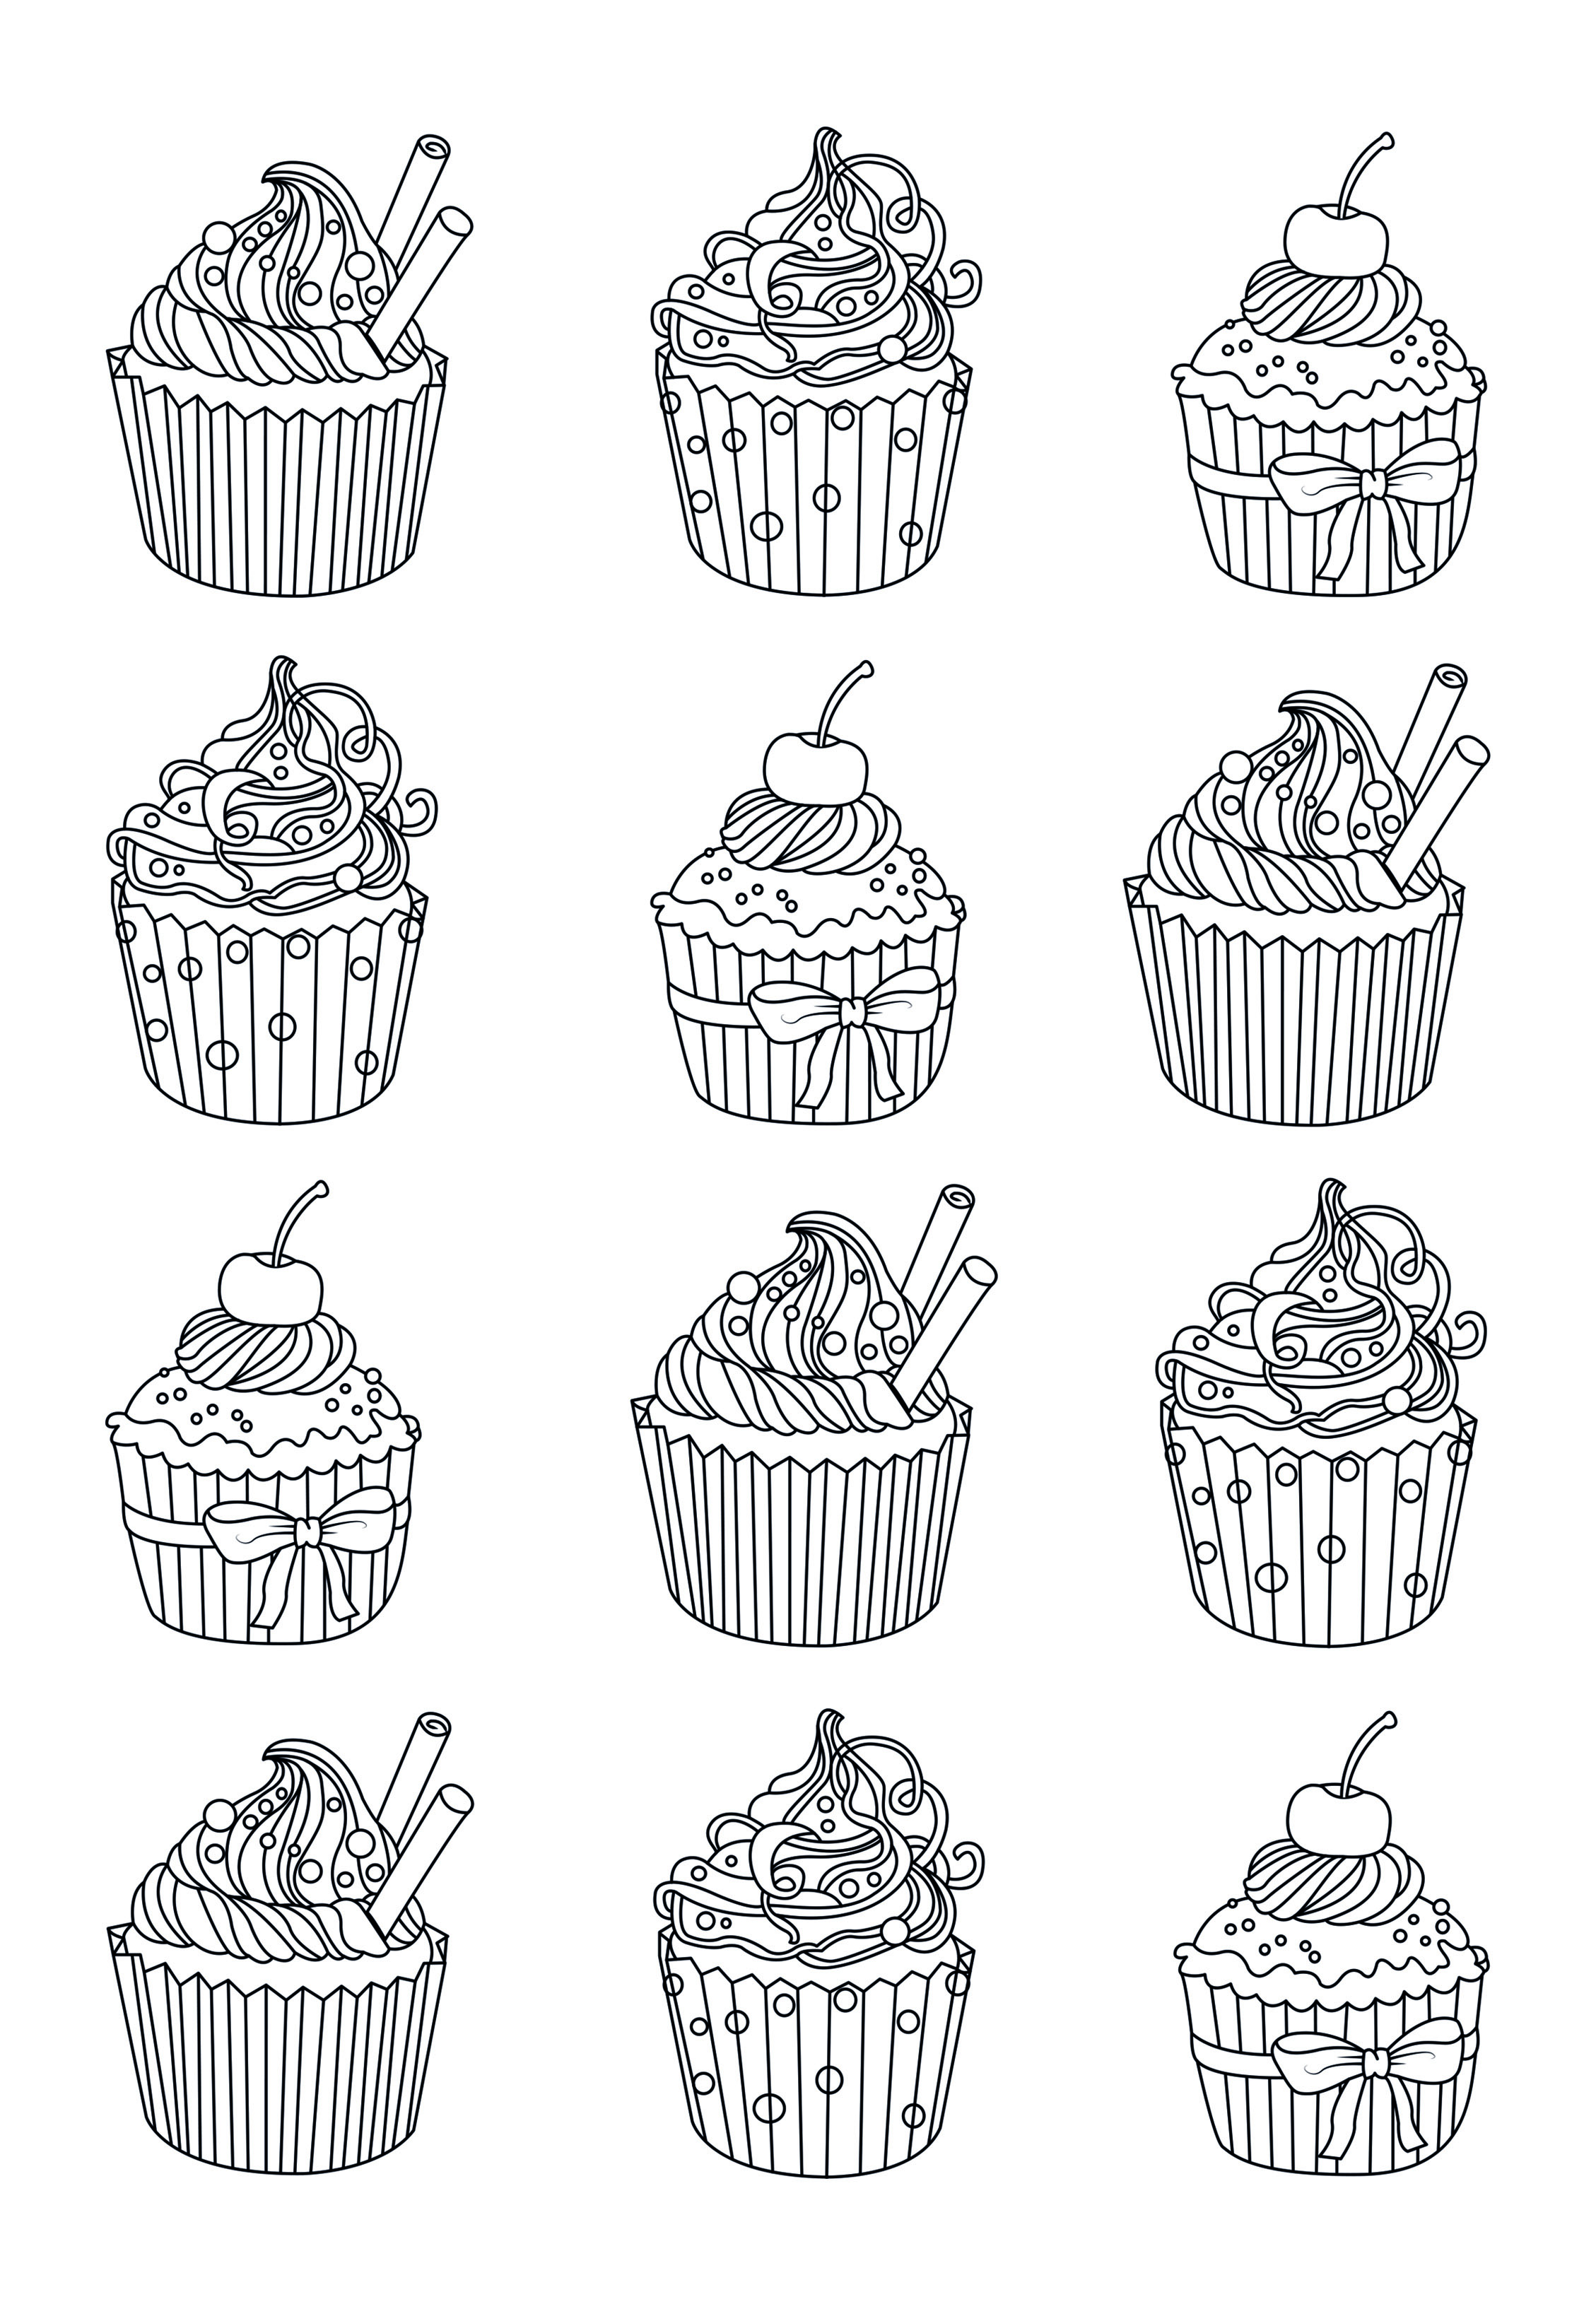 Yum Many Coloring Page Easy To Colors And Eat